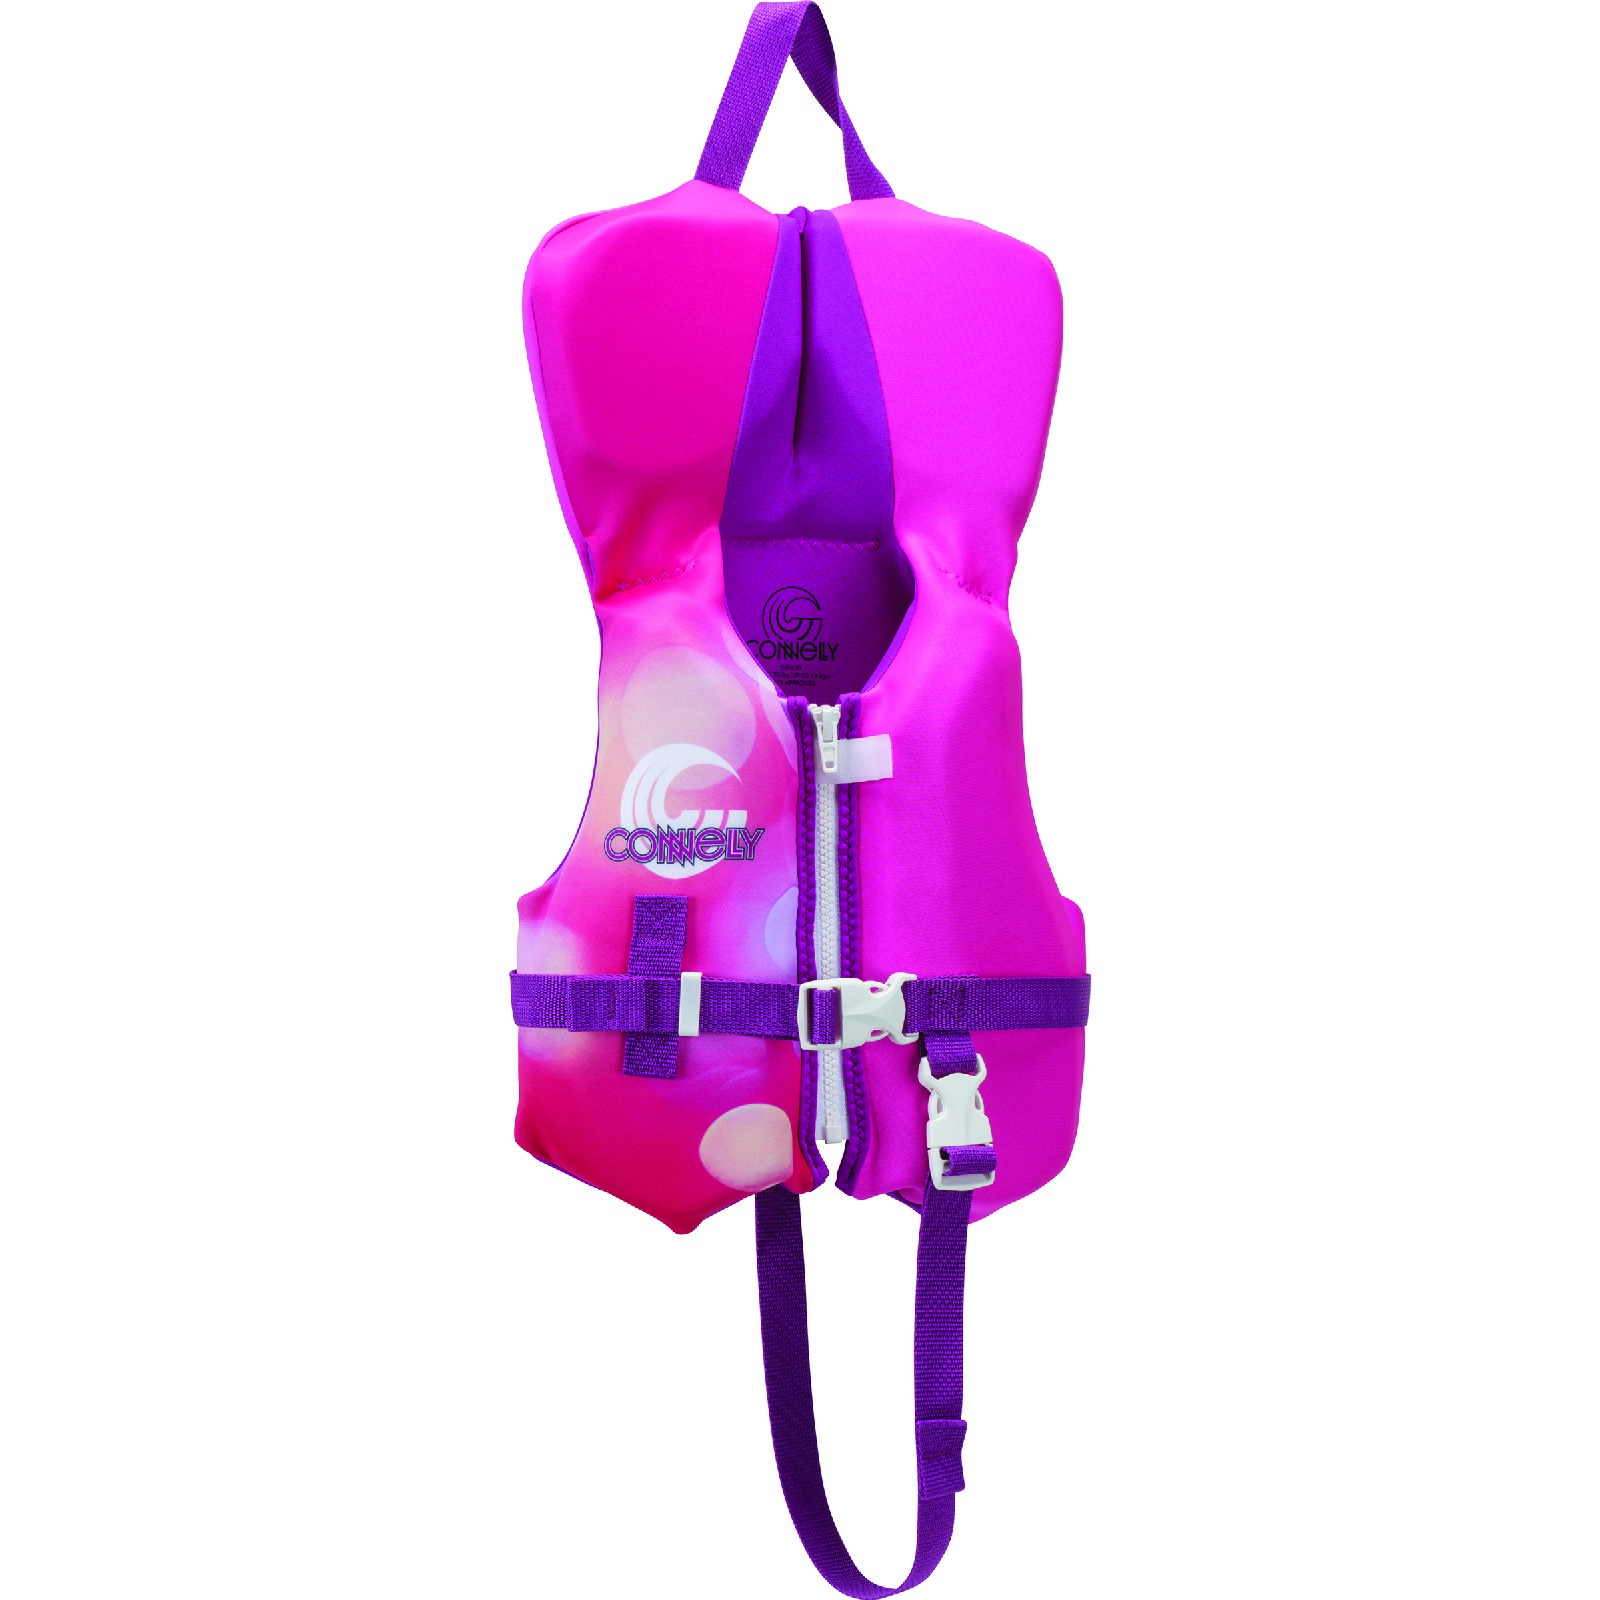 GIRL'S CLASSIC NEO LIFE VEST - INFANT 0-14KG CONNELLY 2019